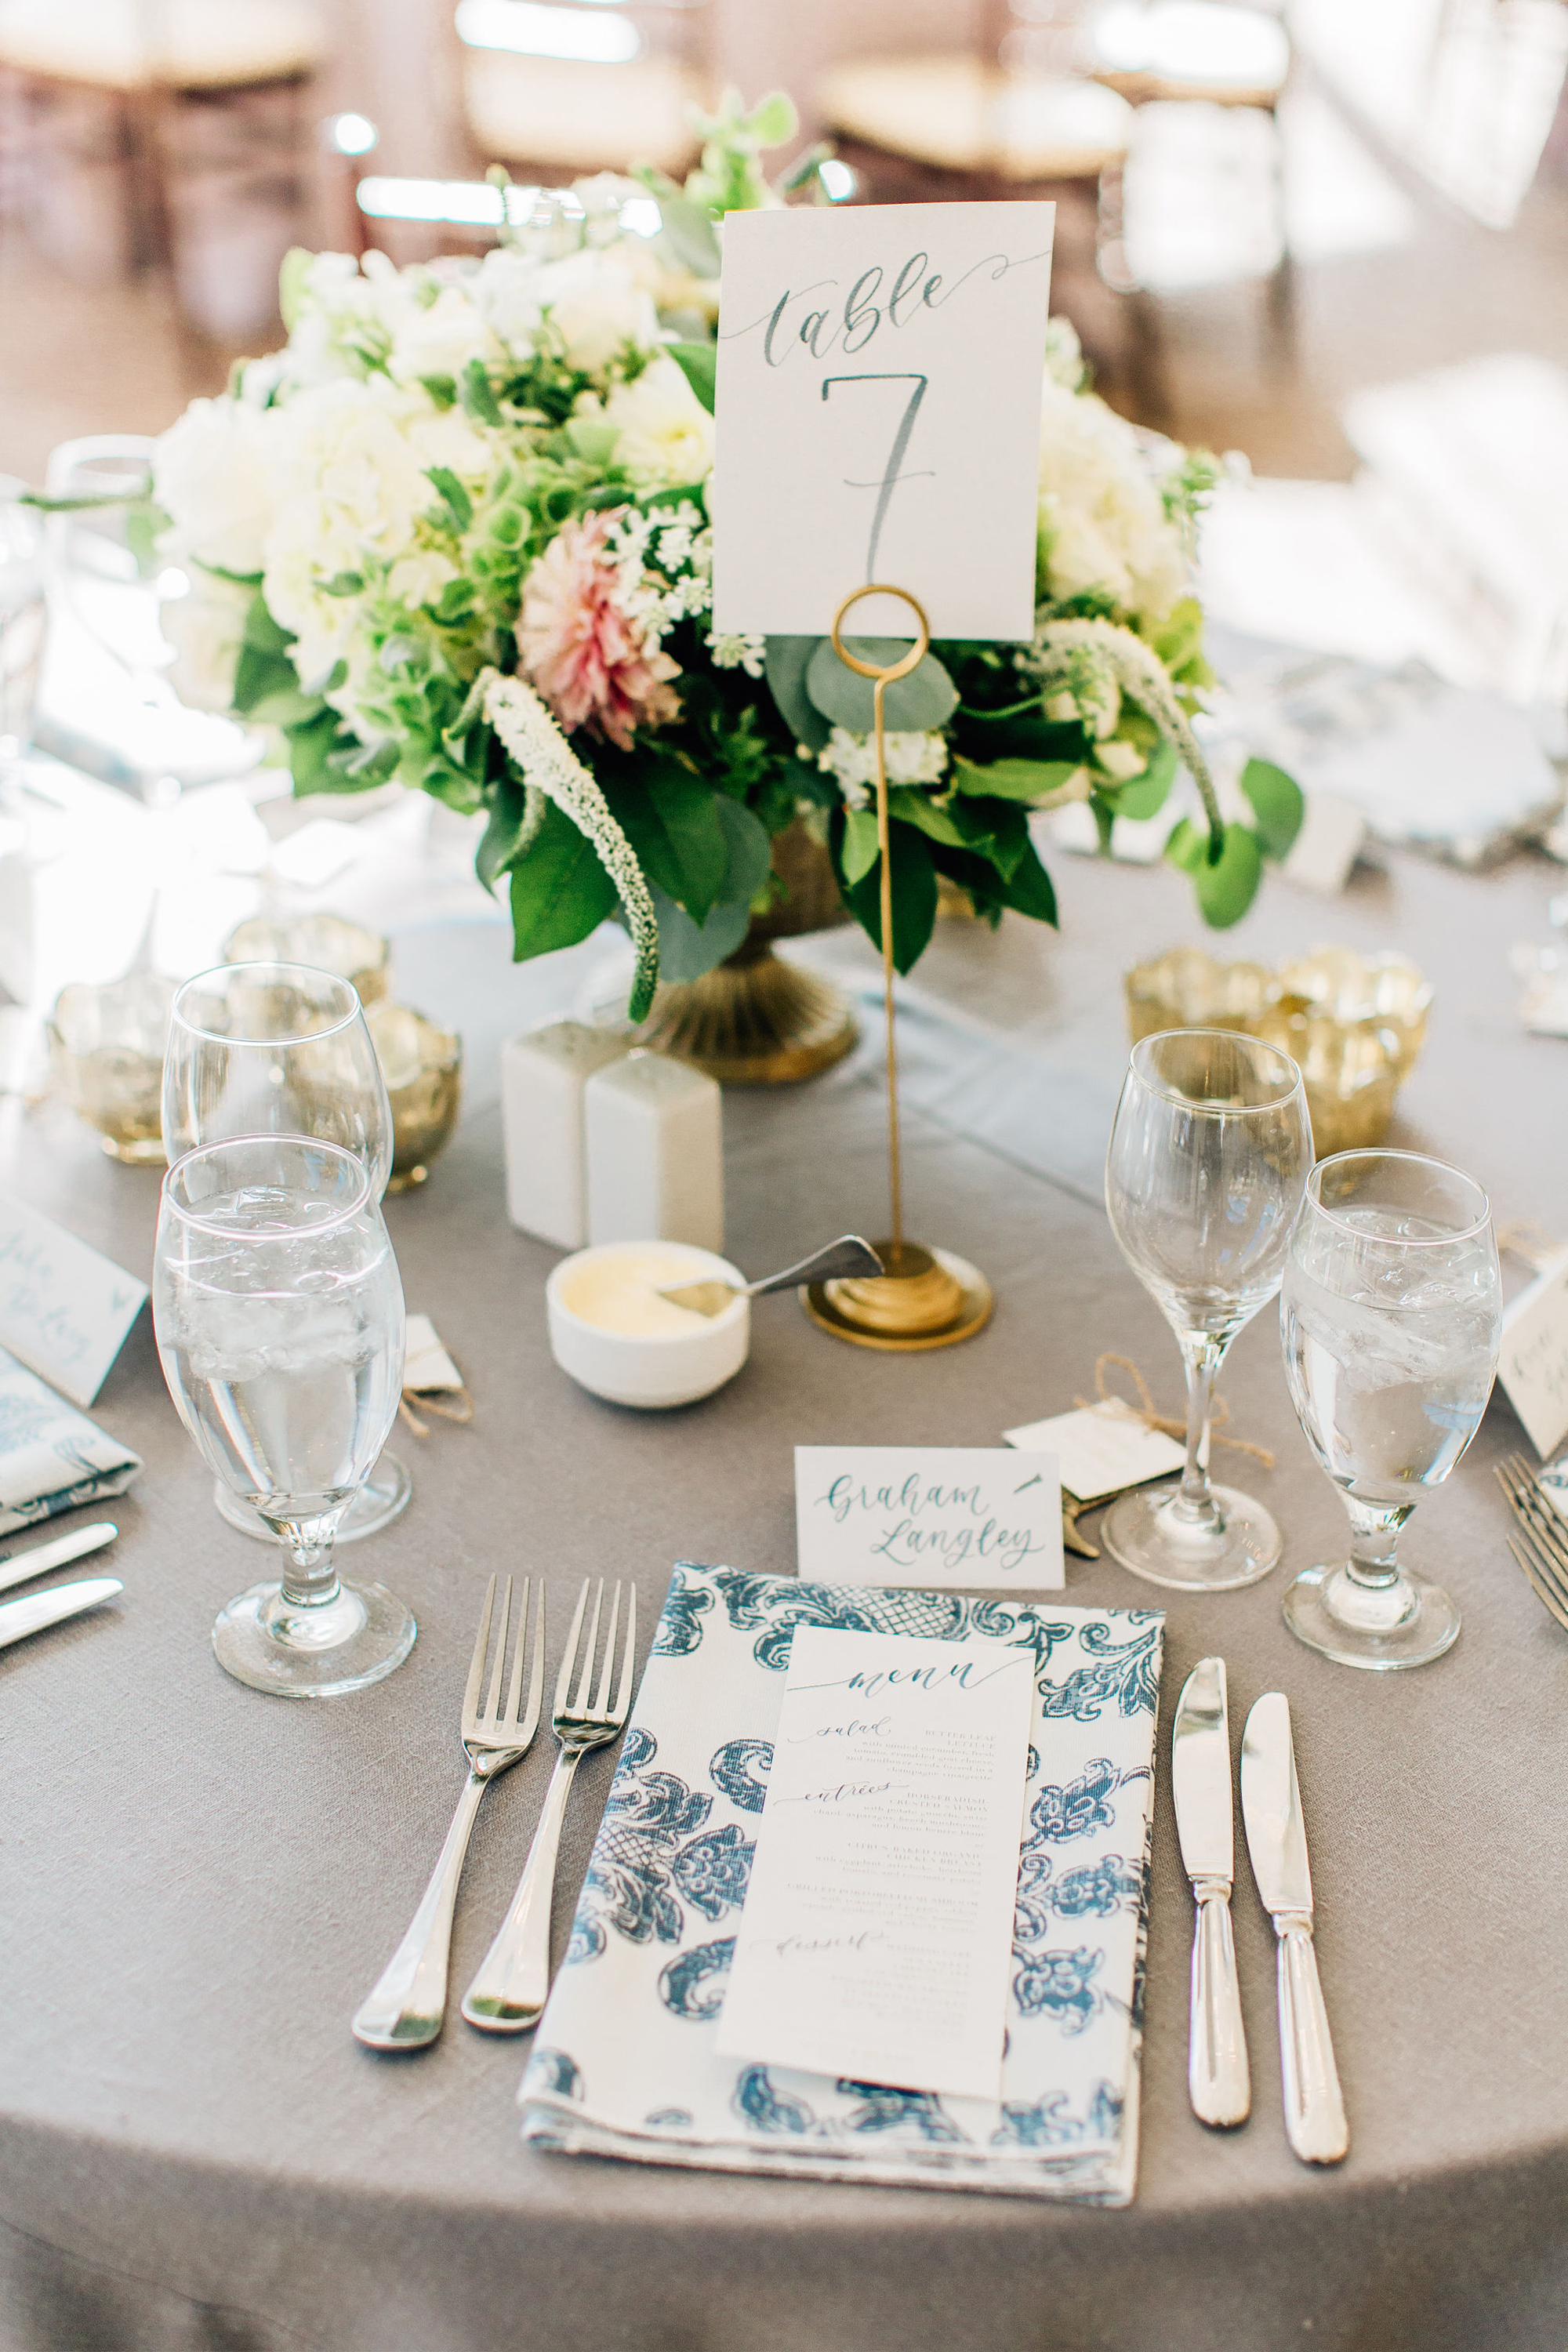 Sam Allen Creates Watercolor Wedding Reception Menu, Table Numbers and Calligraphy Tent Cards, Jenna Bechtholt Photography.jpg